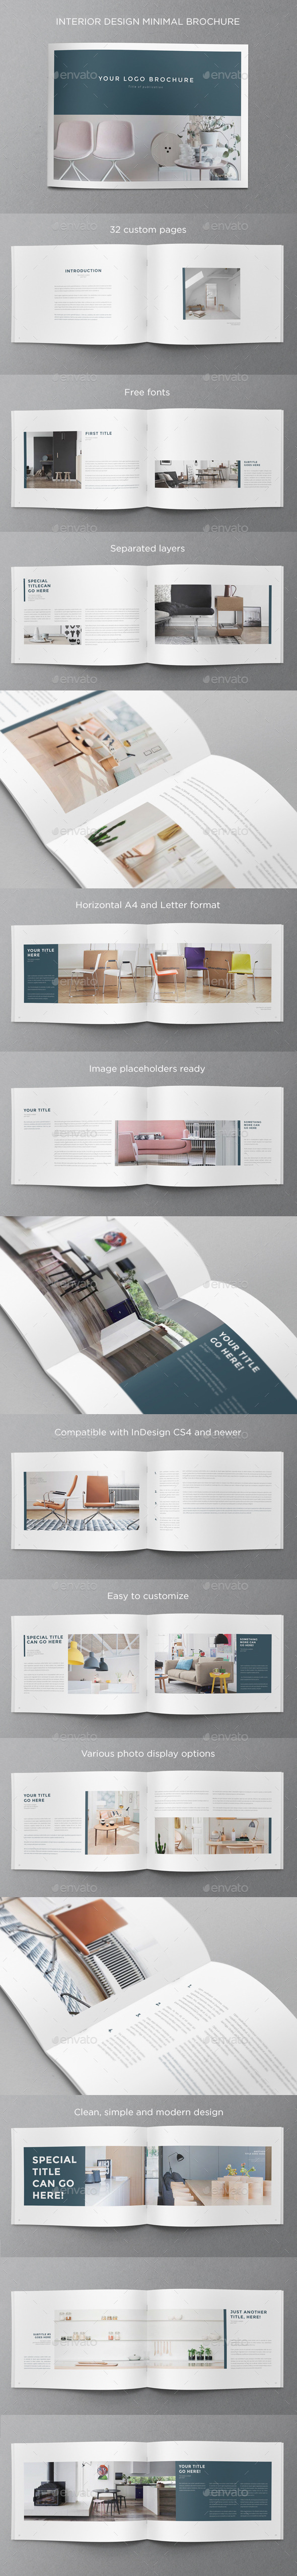 GraphicRiver Interior Design Minimal Brochure 11243000